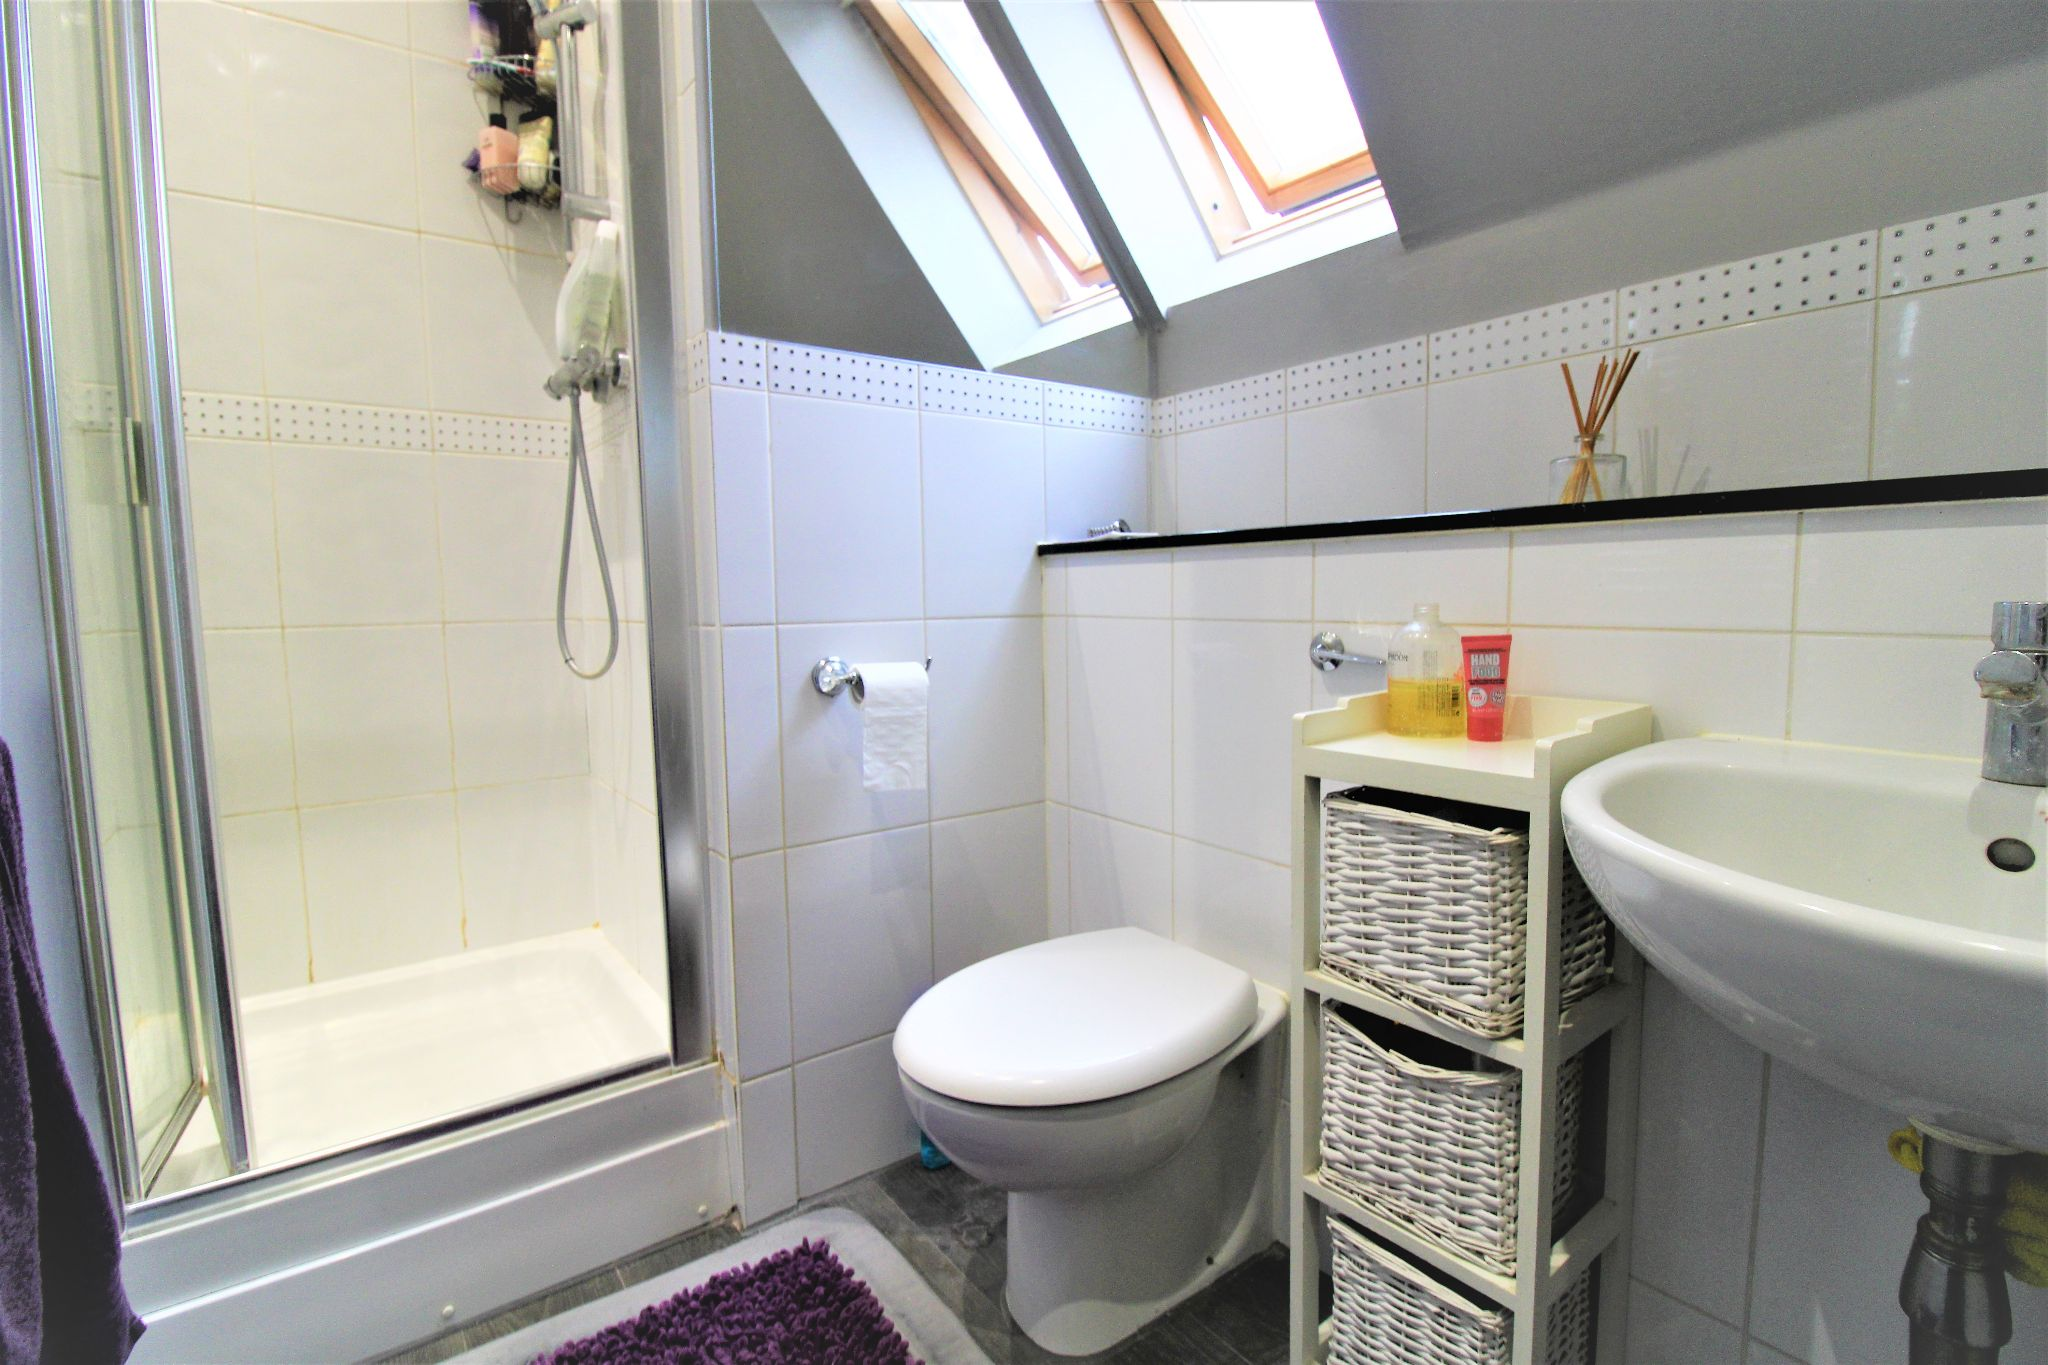 5 Bedroom Detached House For Sale - Family Bathroom 2